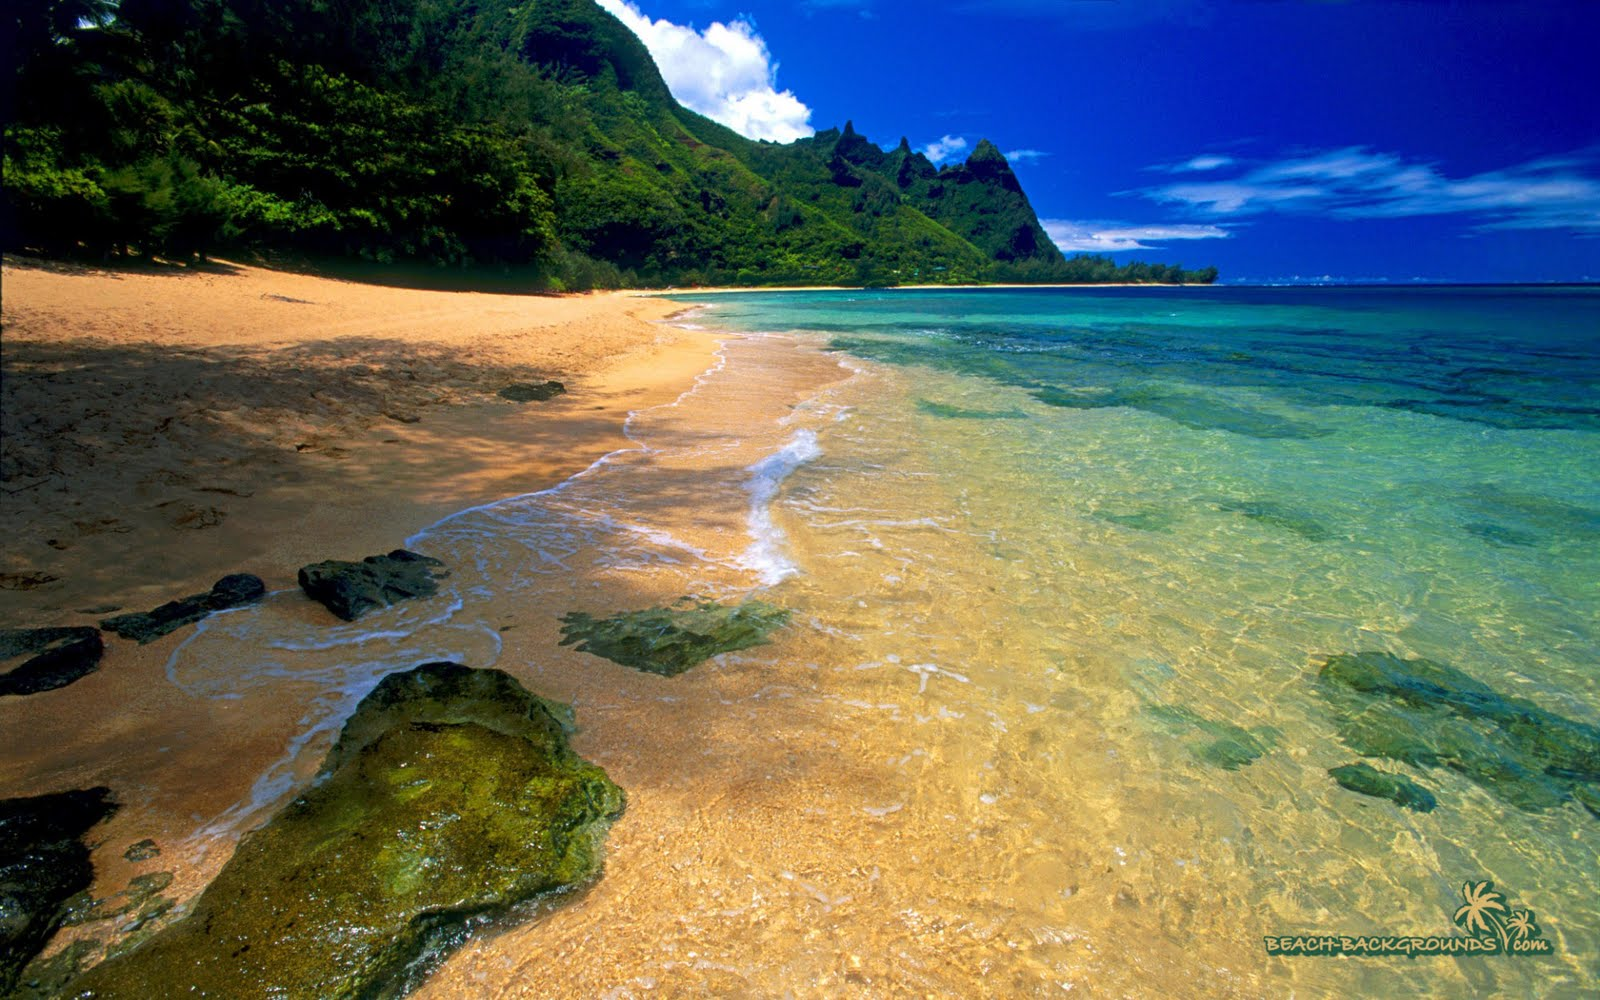 Pic new posts 1080p wallpapers beach - Beach hd wallpapers 1080p ...